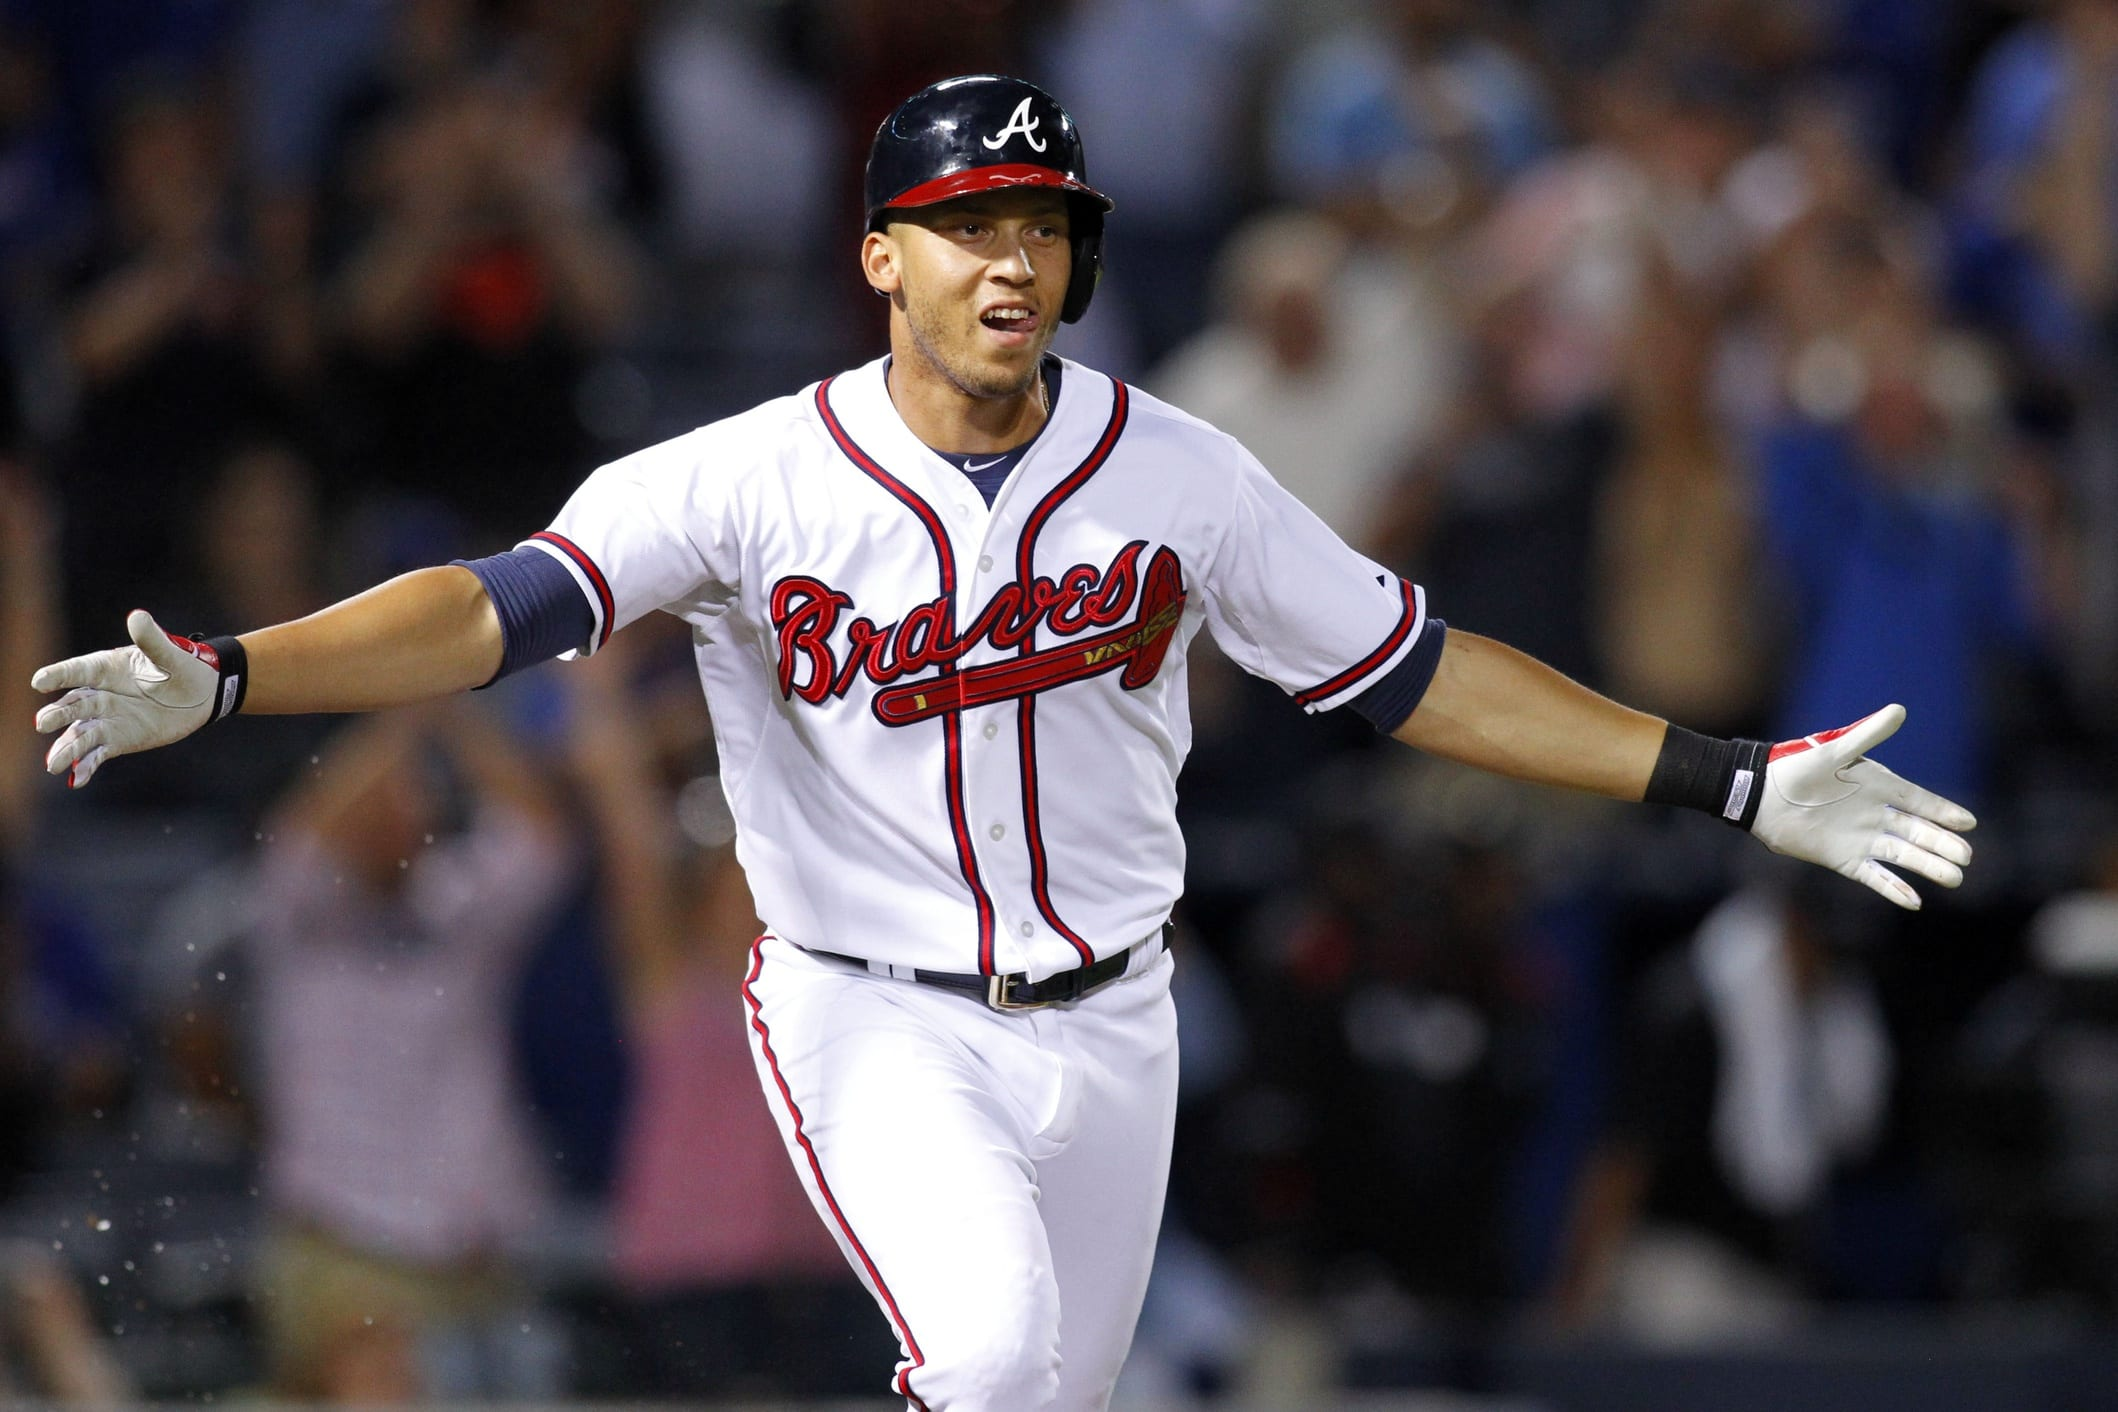 Mlb Rumors: Braves Trade Andrelton Simmons To Angels